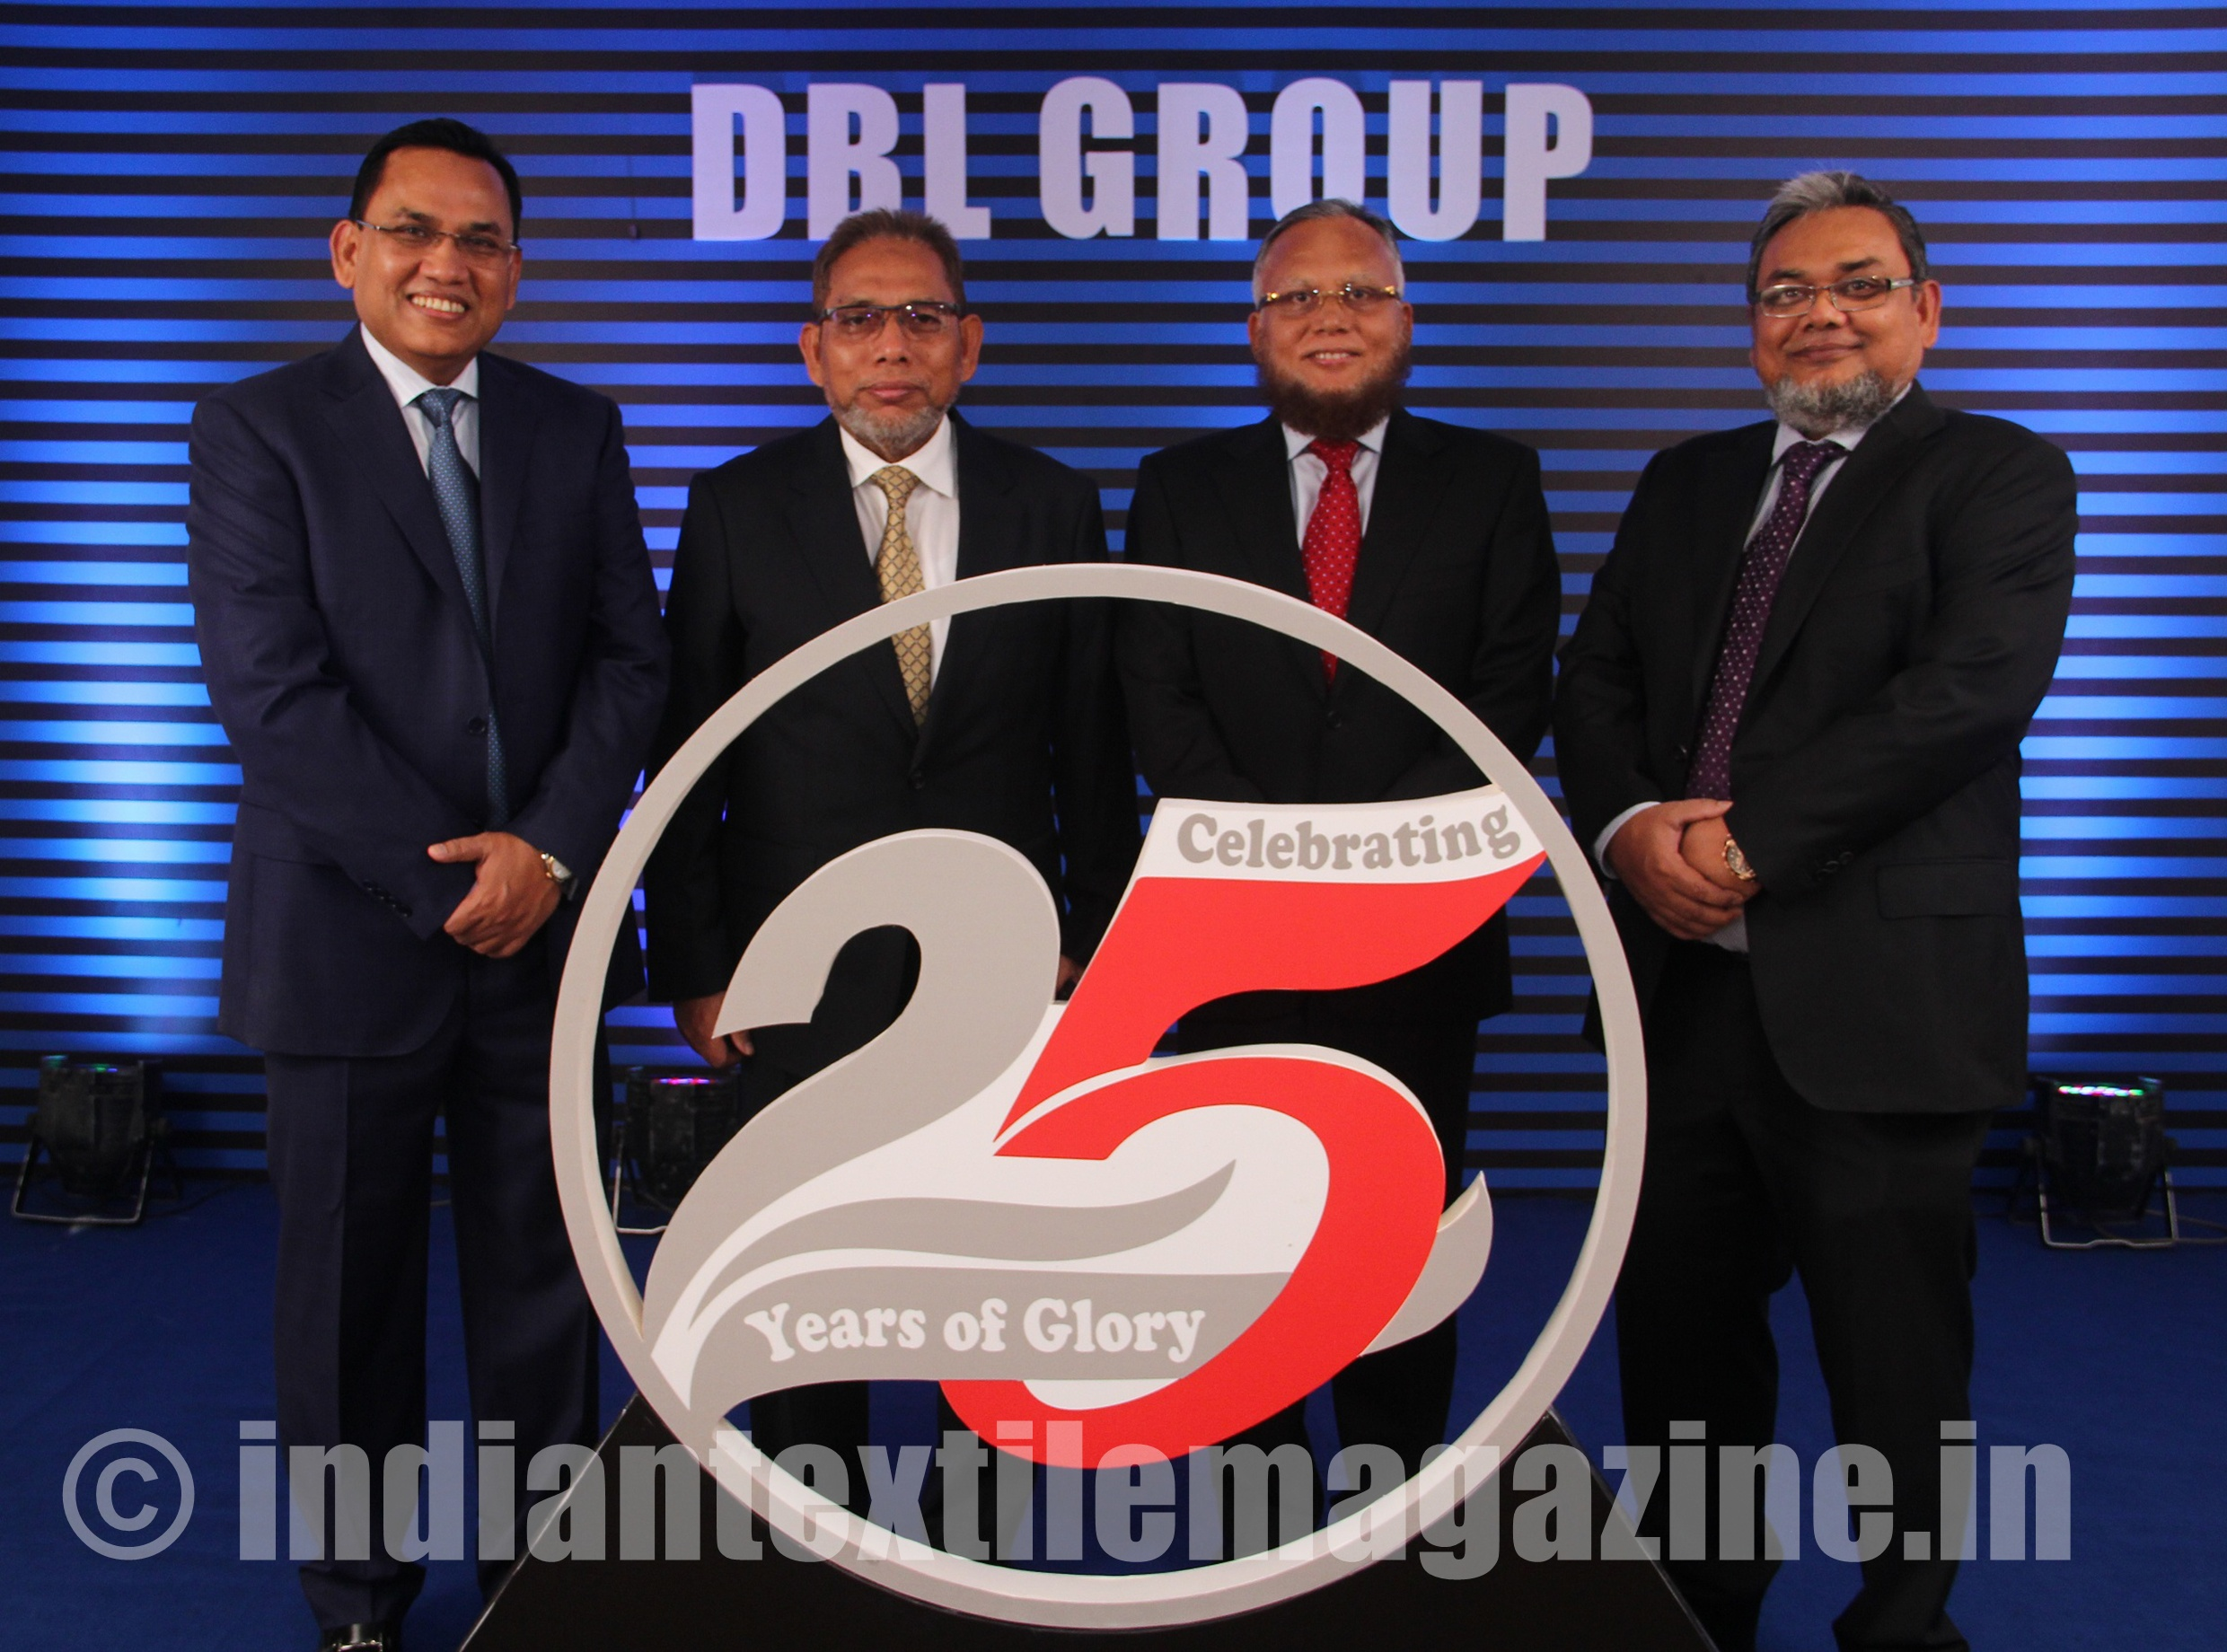 DBL Group completes 25 years of outstanding performance